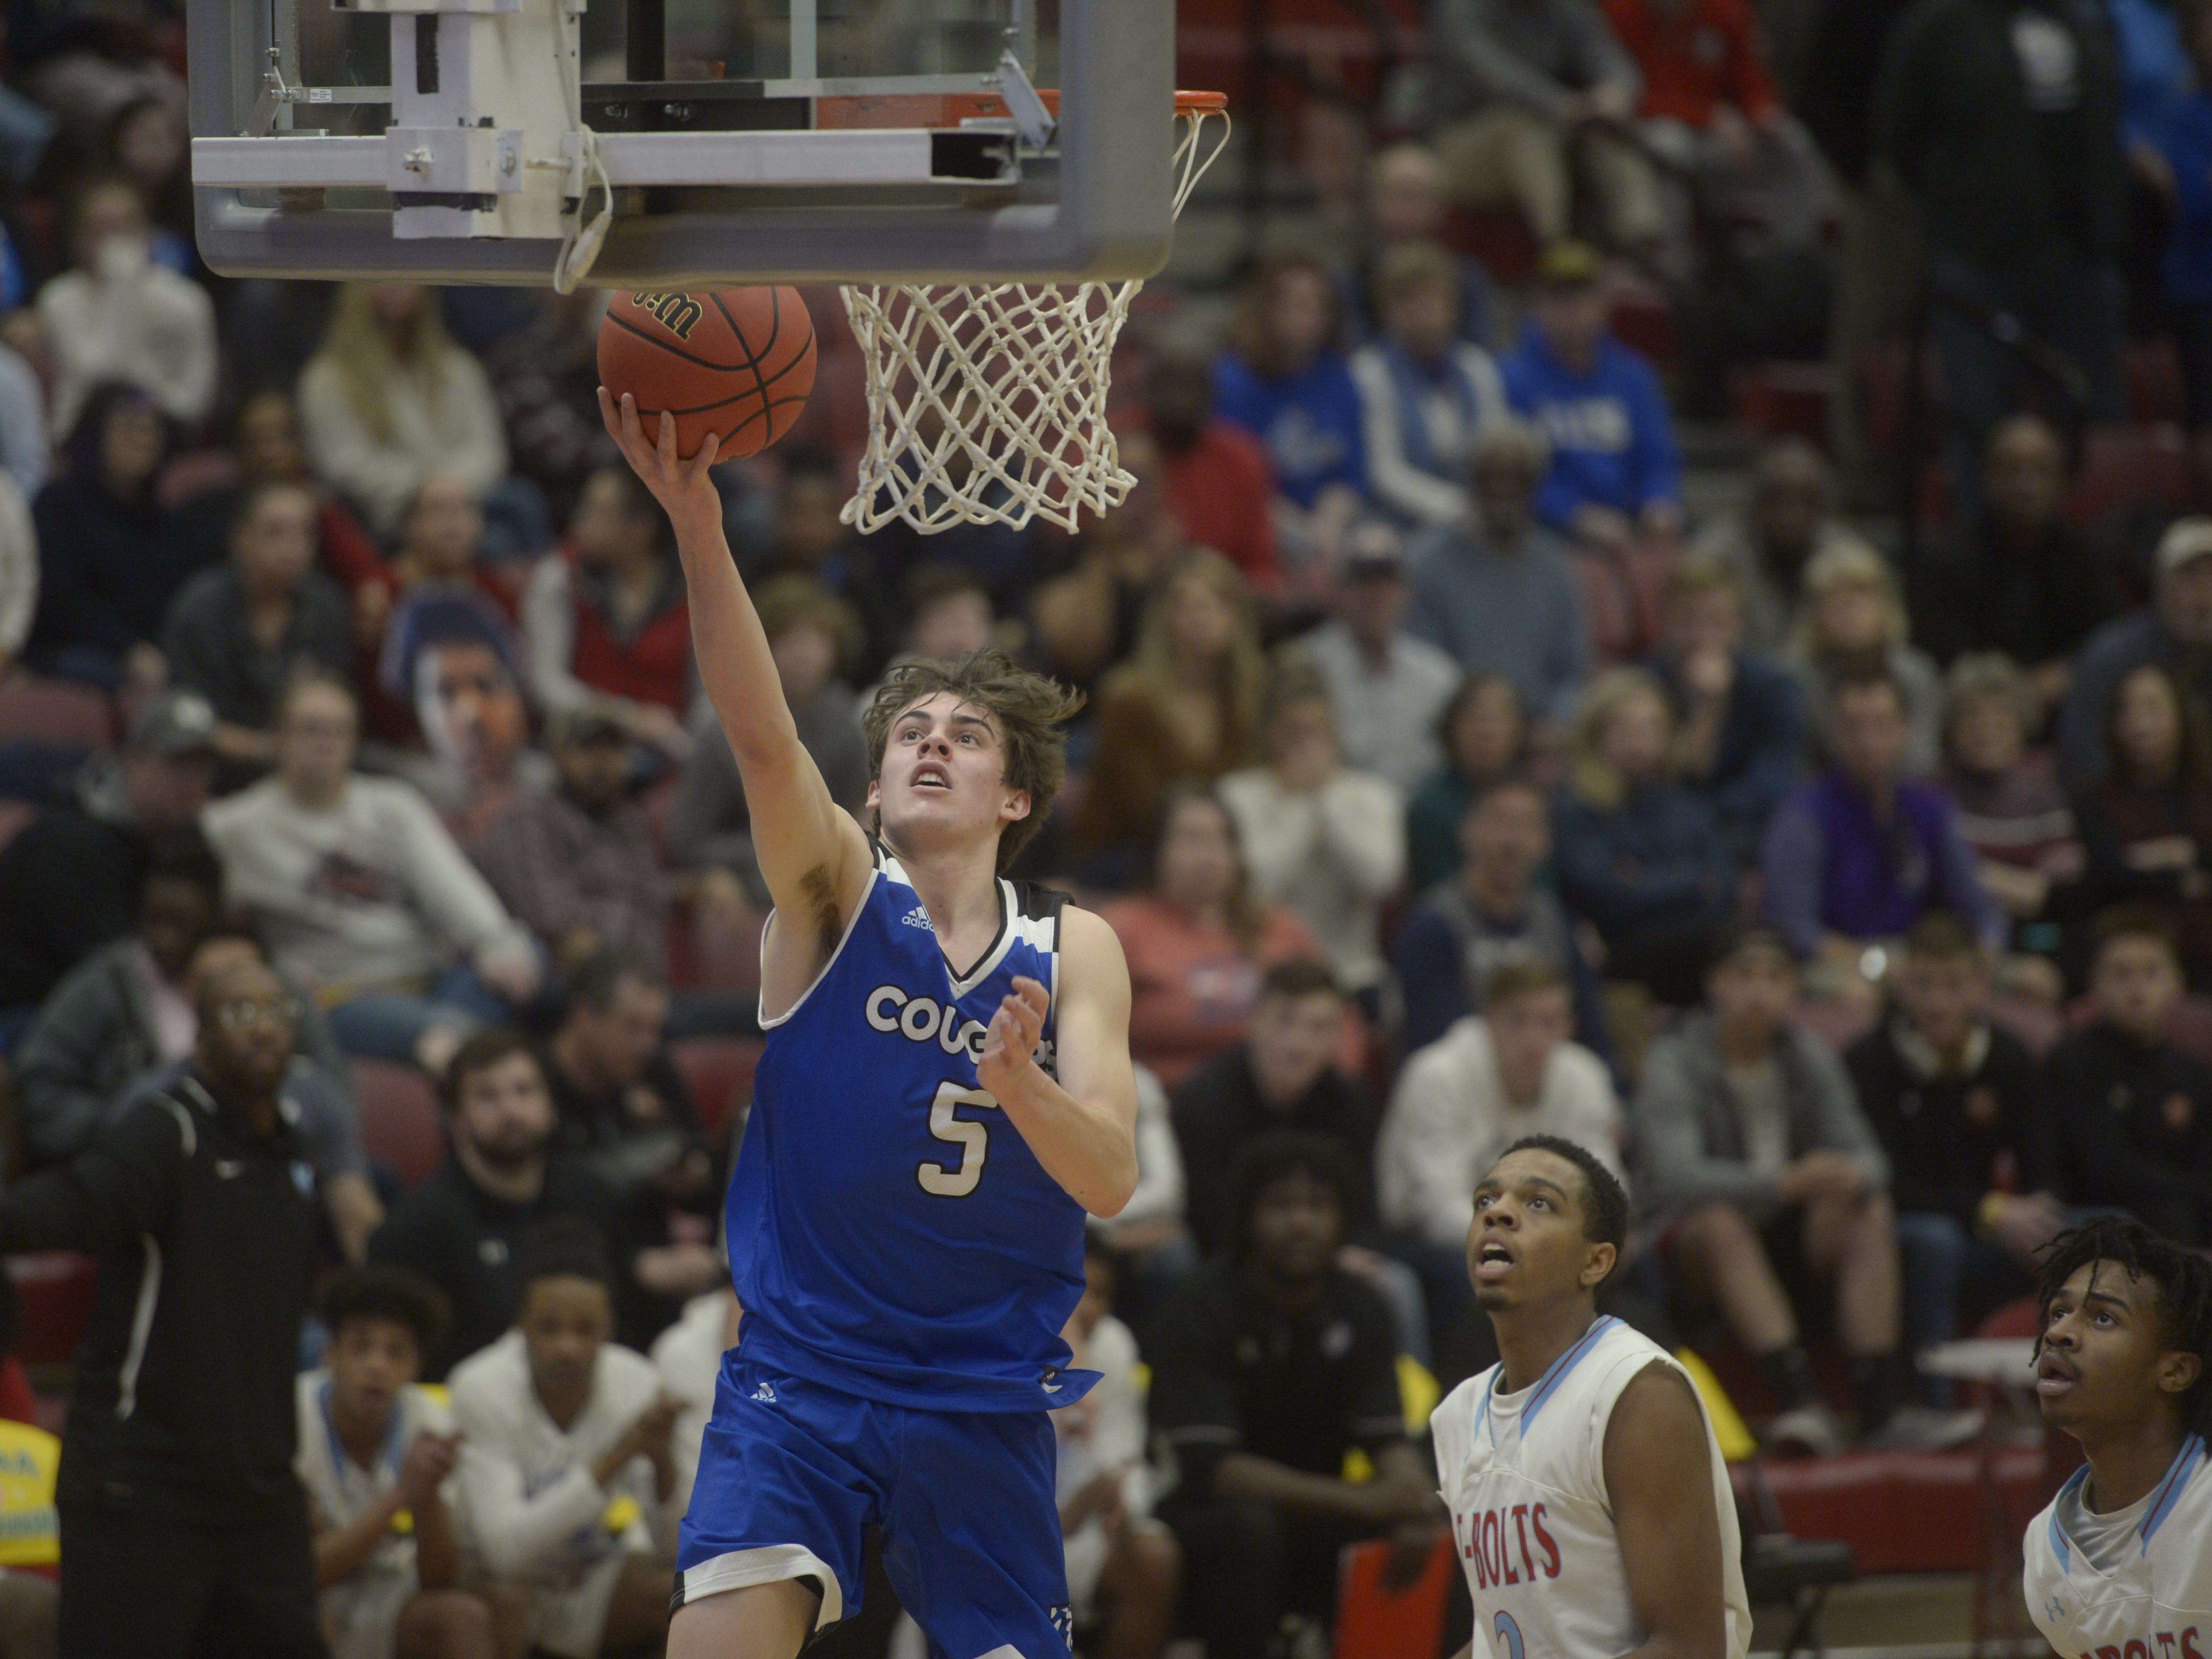 Resurrection Christian's Reece Johnson goes for a layup during the Cougars' 84-68 loss to Manual in the Class 3A quarterfinals on Thursday at the University of Denver.